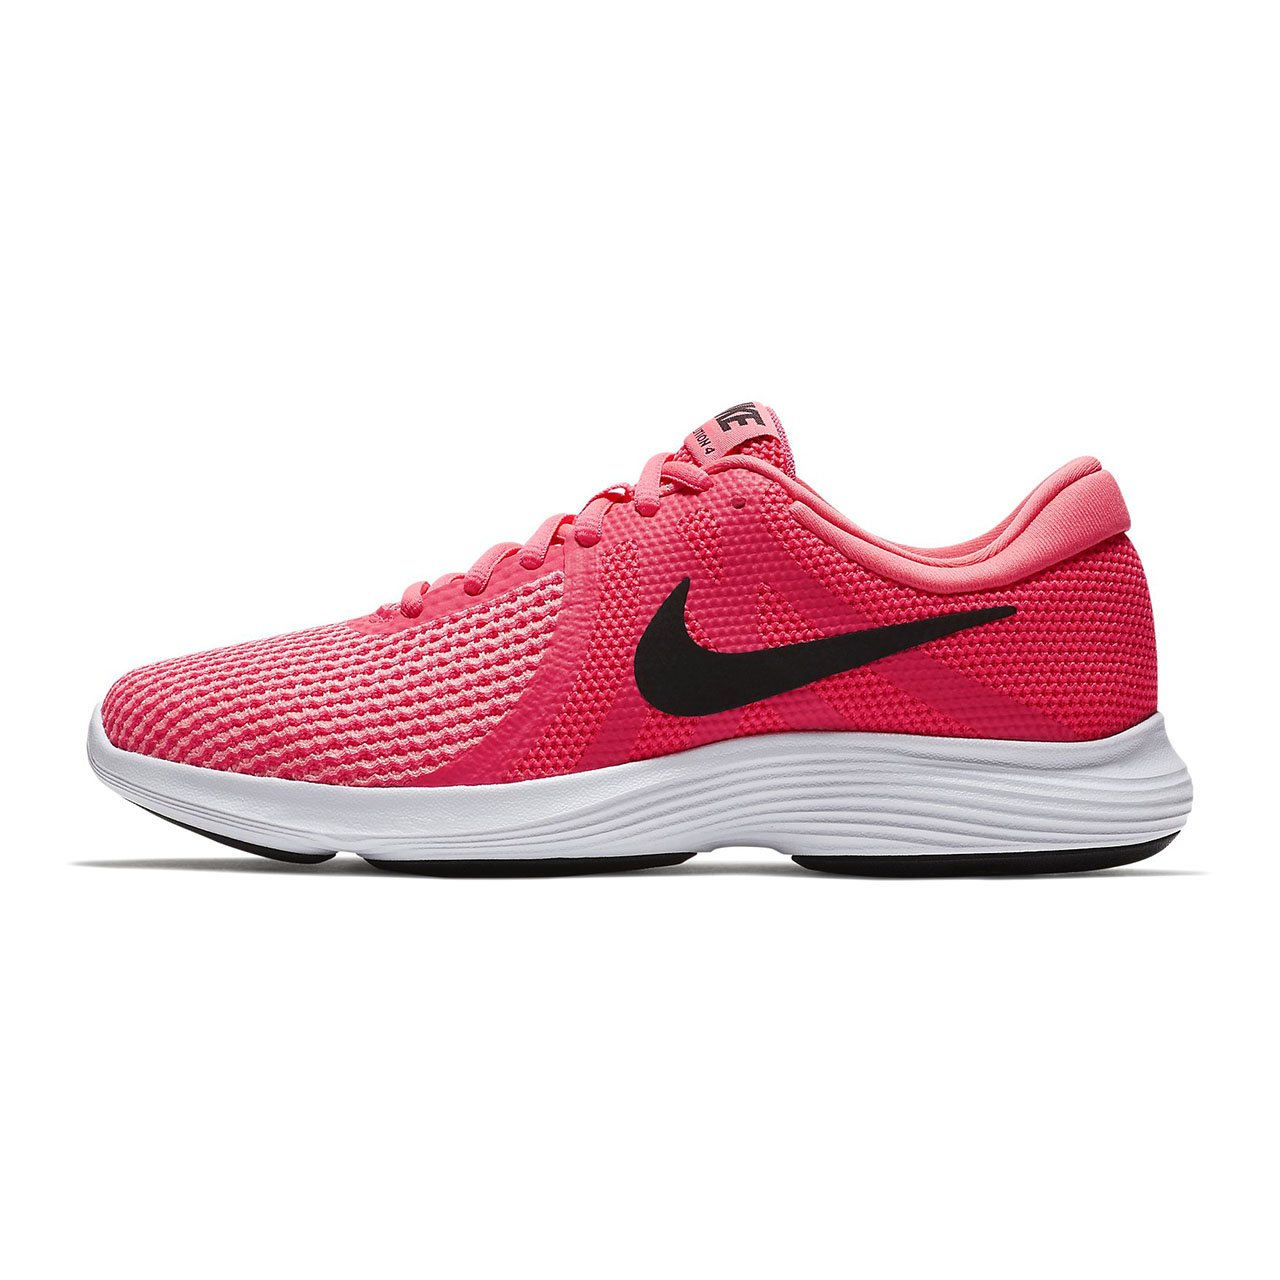 NIKE Women's Revolution 4 Running Shoe B0716QJBNQ 11 B(M) US|Racer Pink/Black Hot Punch Wht